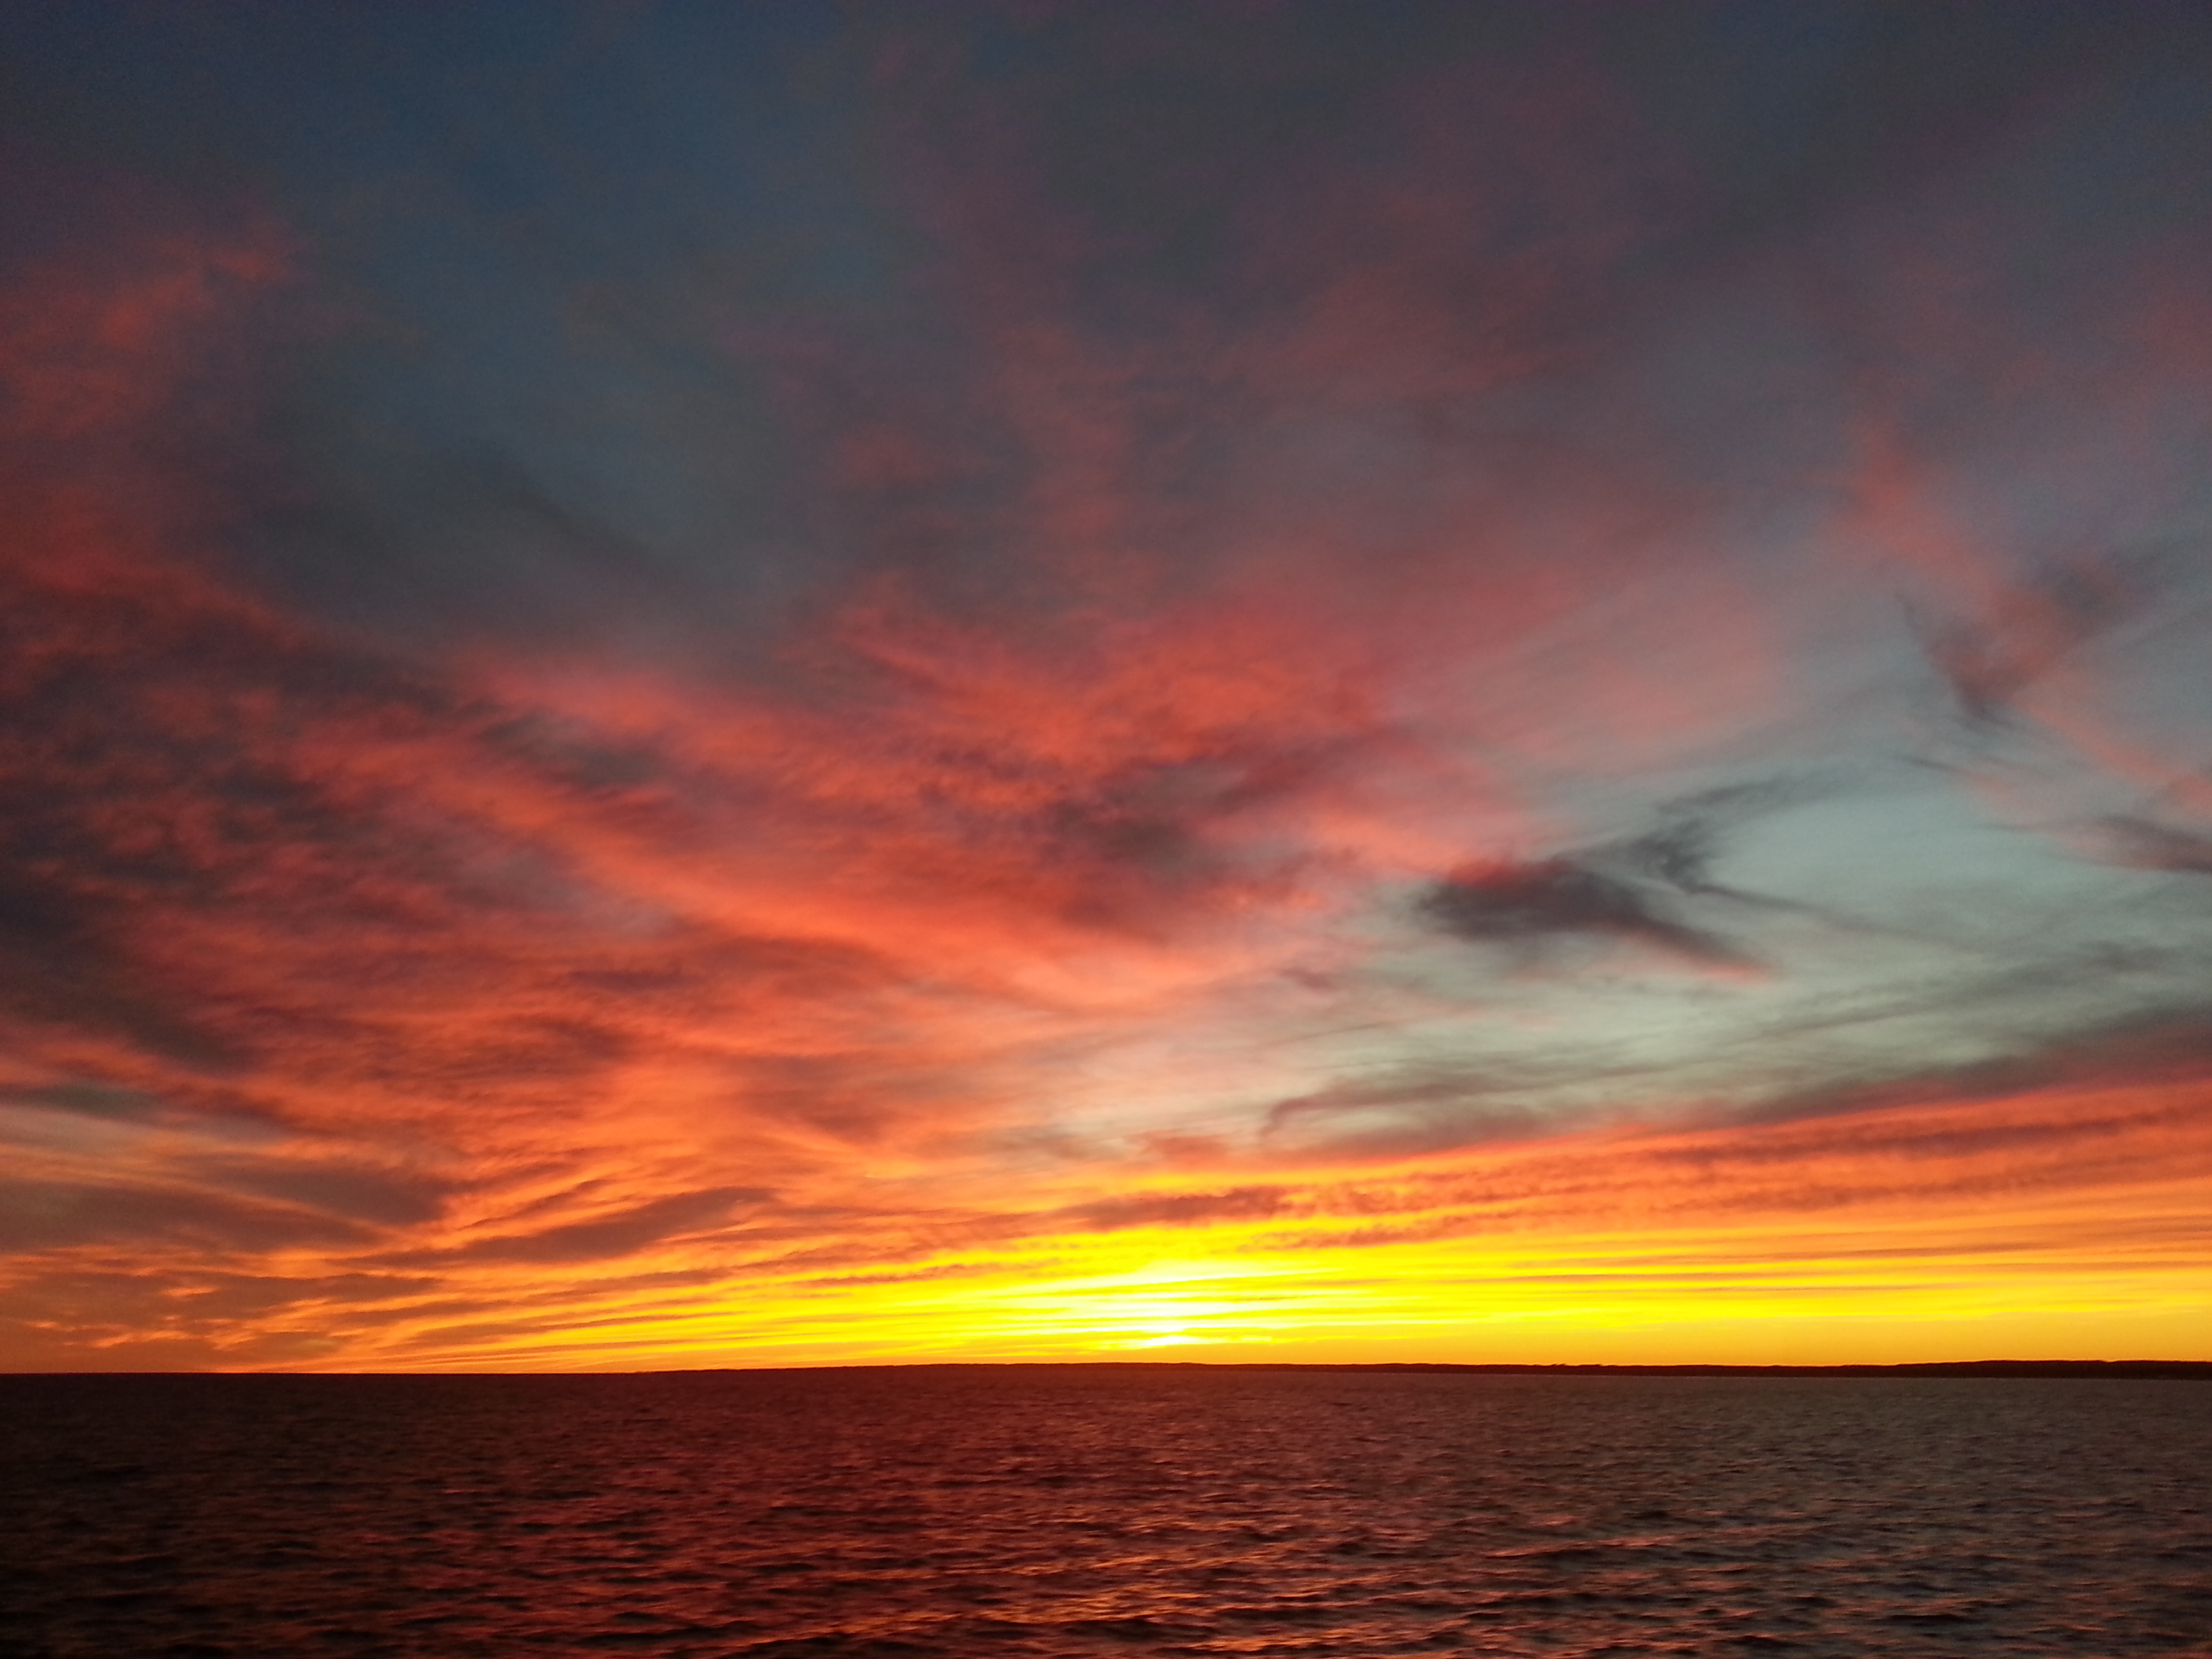 The view from a September evening ferry ride from Pt. Judith, R.I., to Block Island.